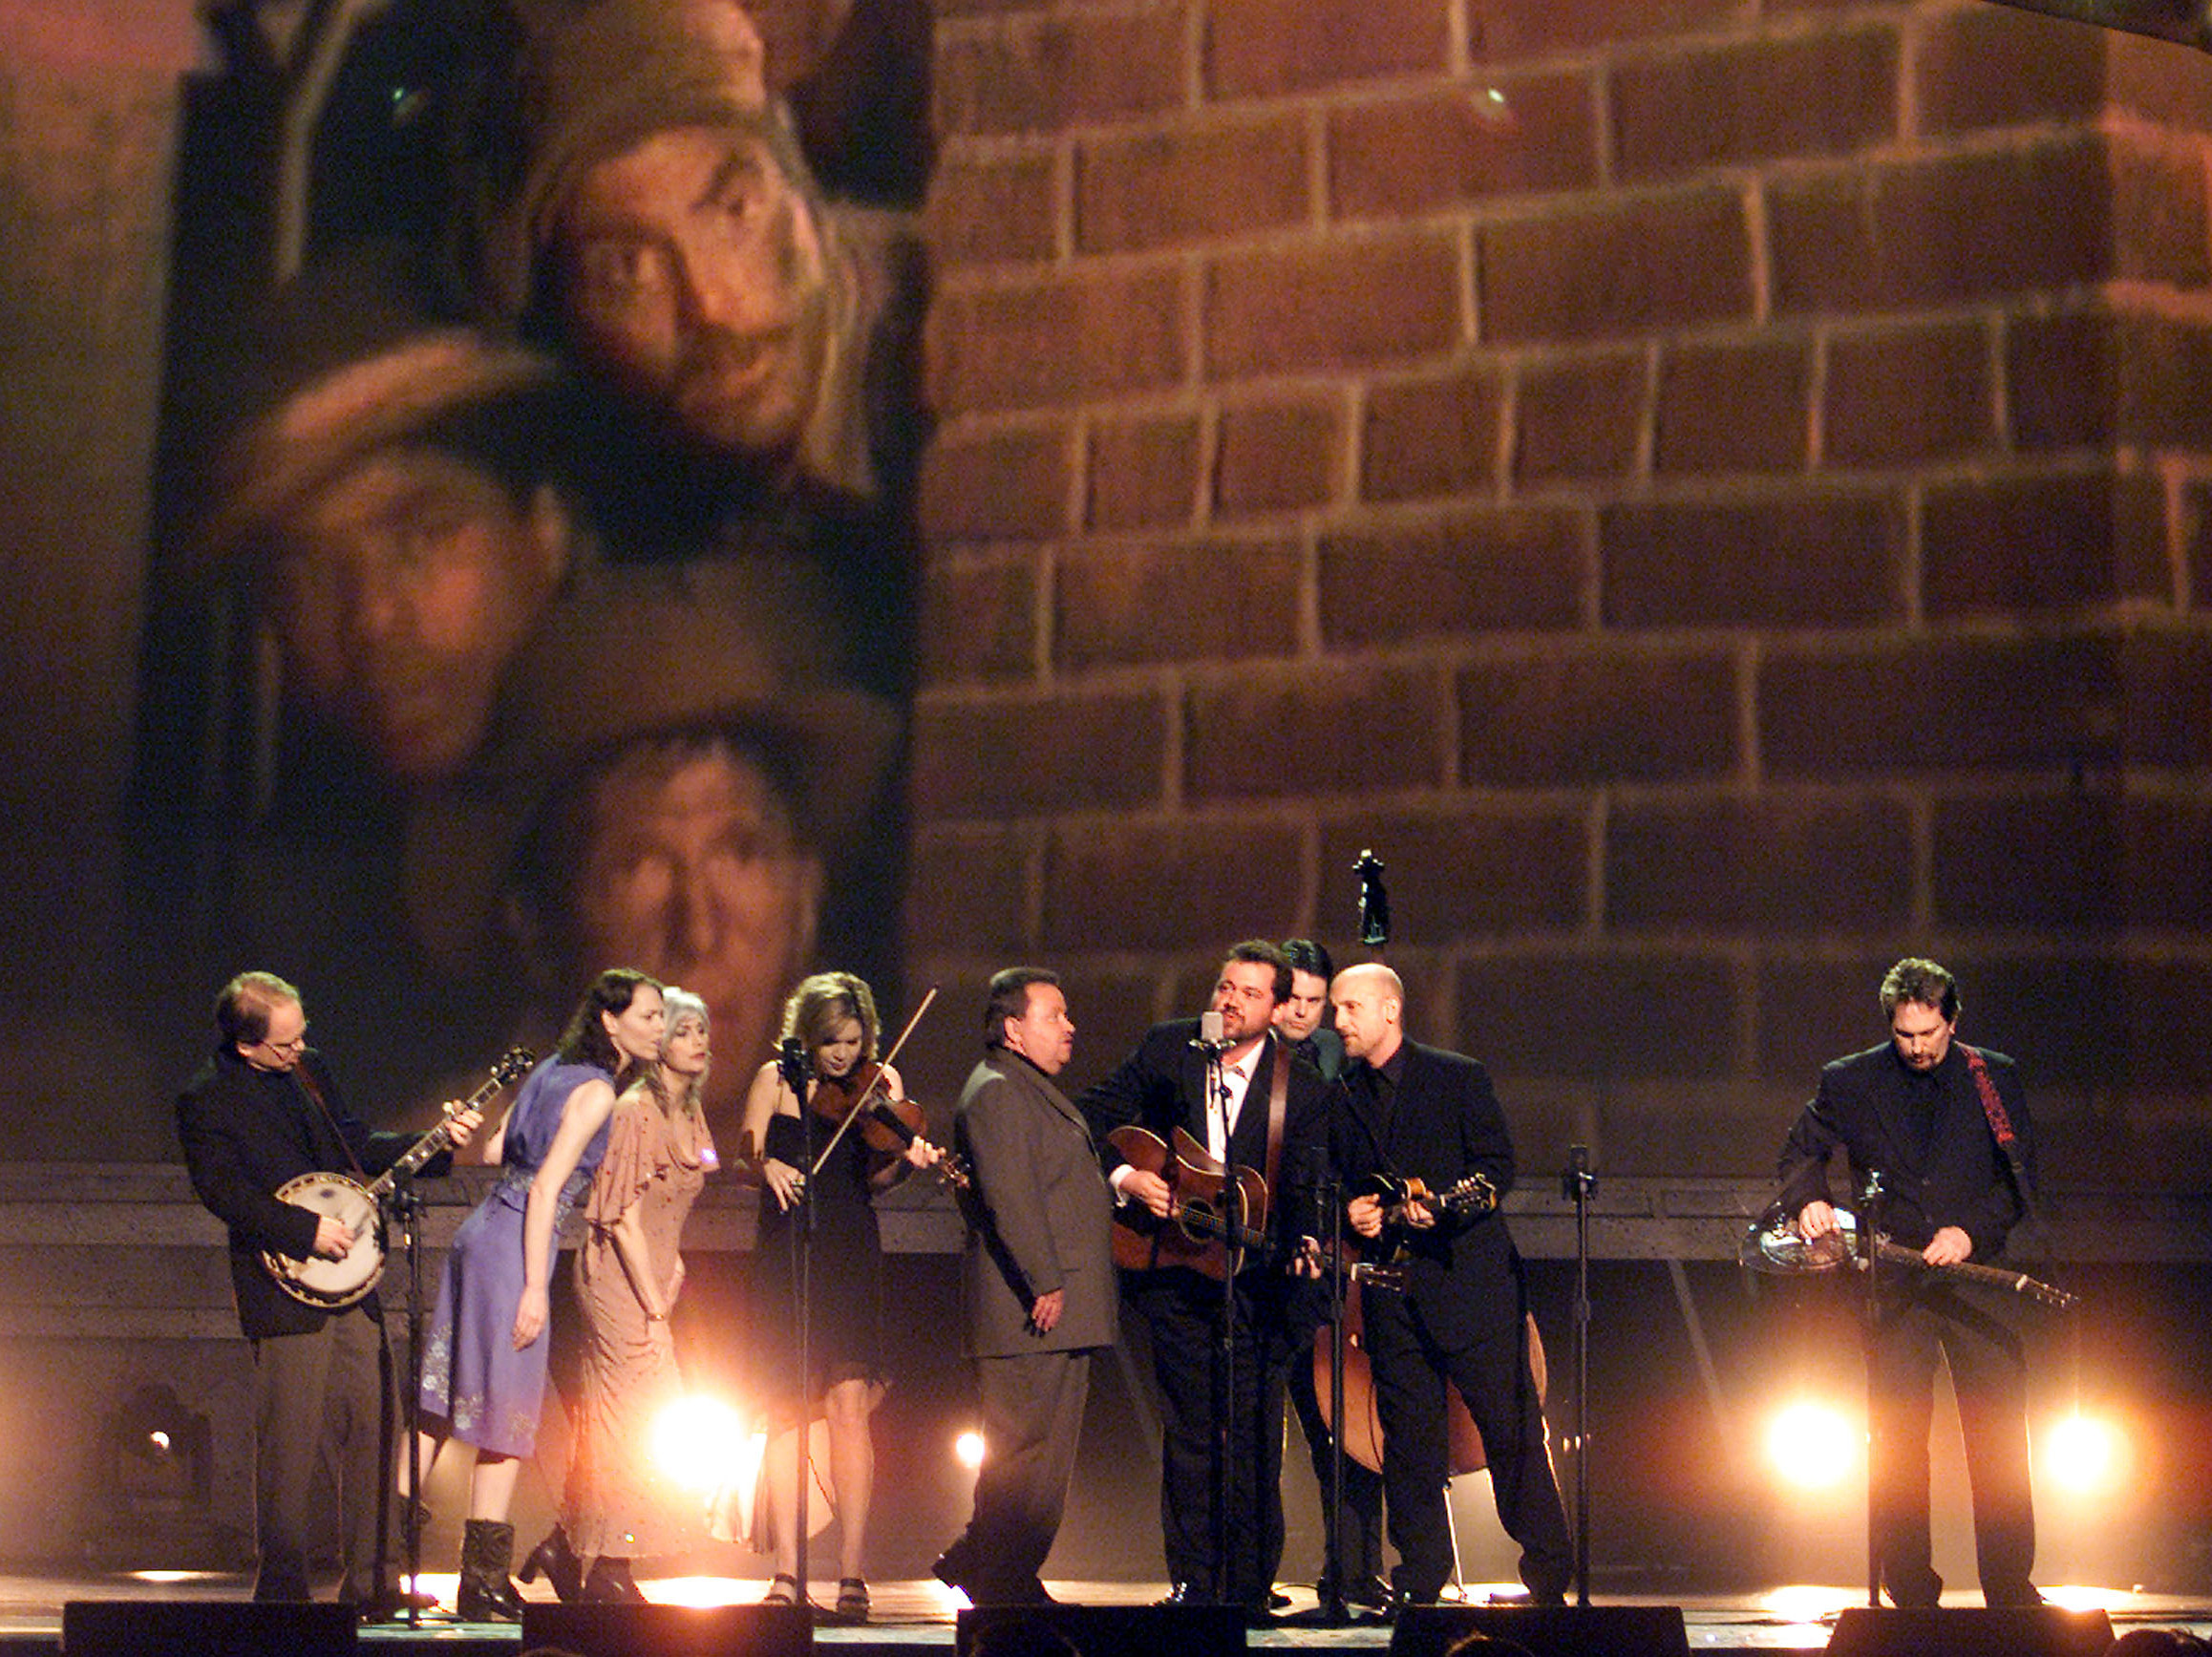 Gillan Welch (left), Emmylou Harris (center), and Alison Krauss with The Soggy Bottom Boys perform songs from the O Brother Where Art Thou? soundtrack at the 44th Annual Grammy Awards.